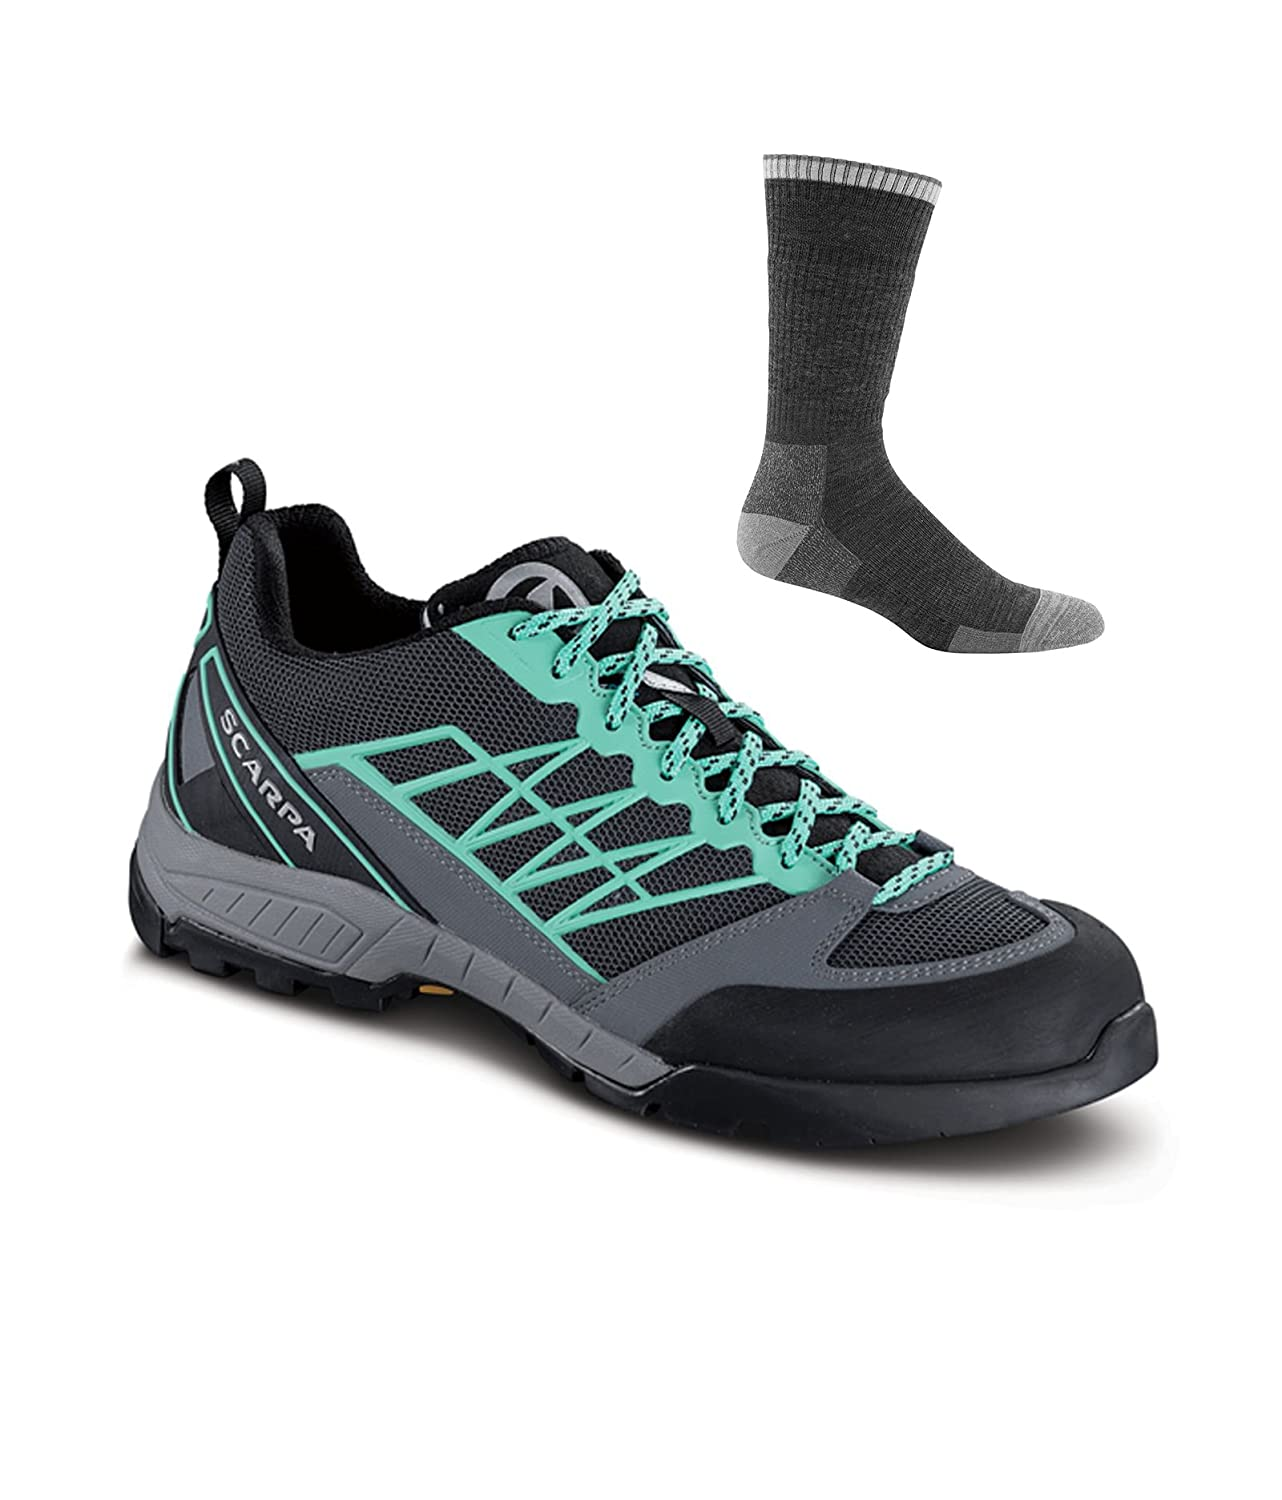 SCARPA Women's Epic Lite Wmn Hiking Shoe B06X6HW6X3 42 M EU|Dark Grey/Jade W/ Sock